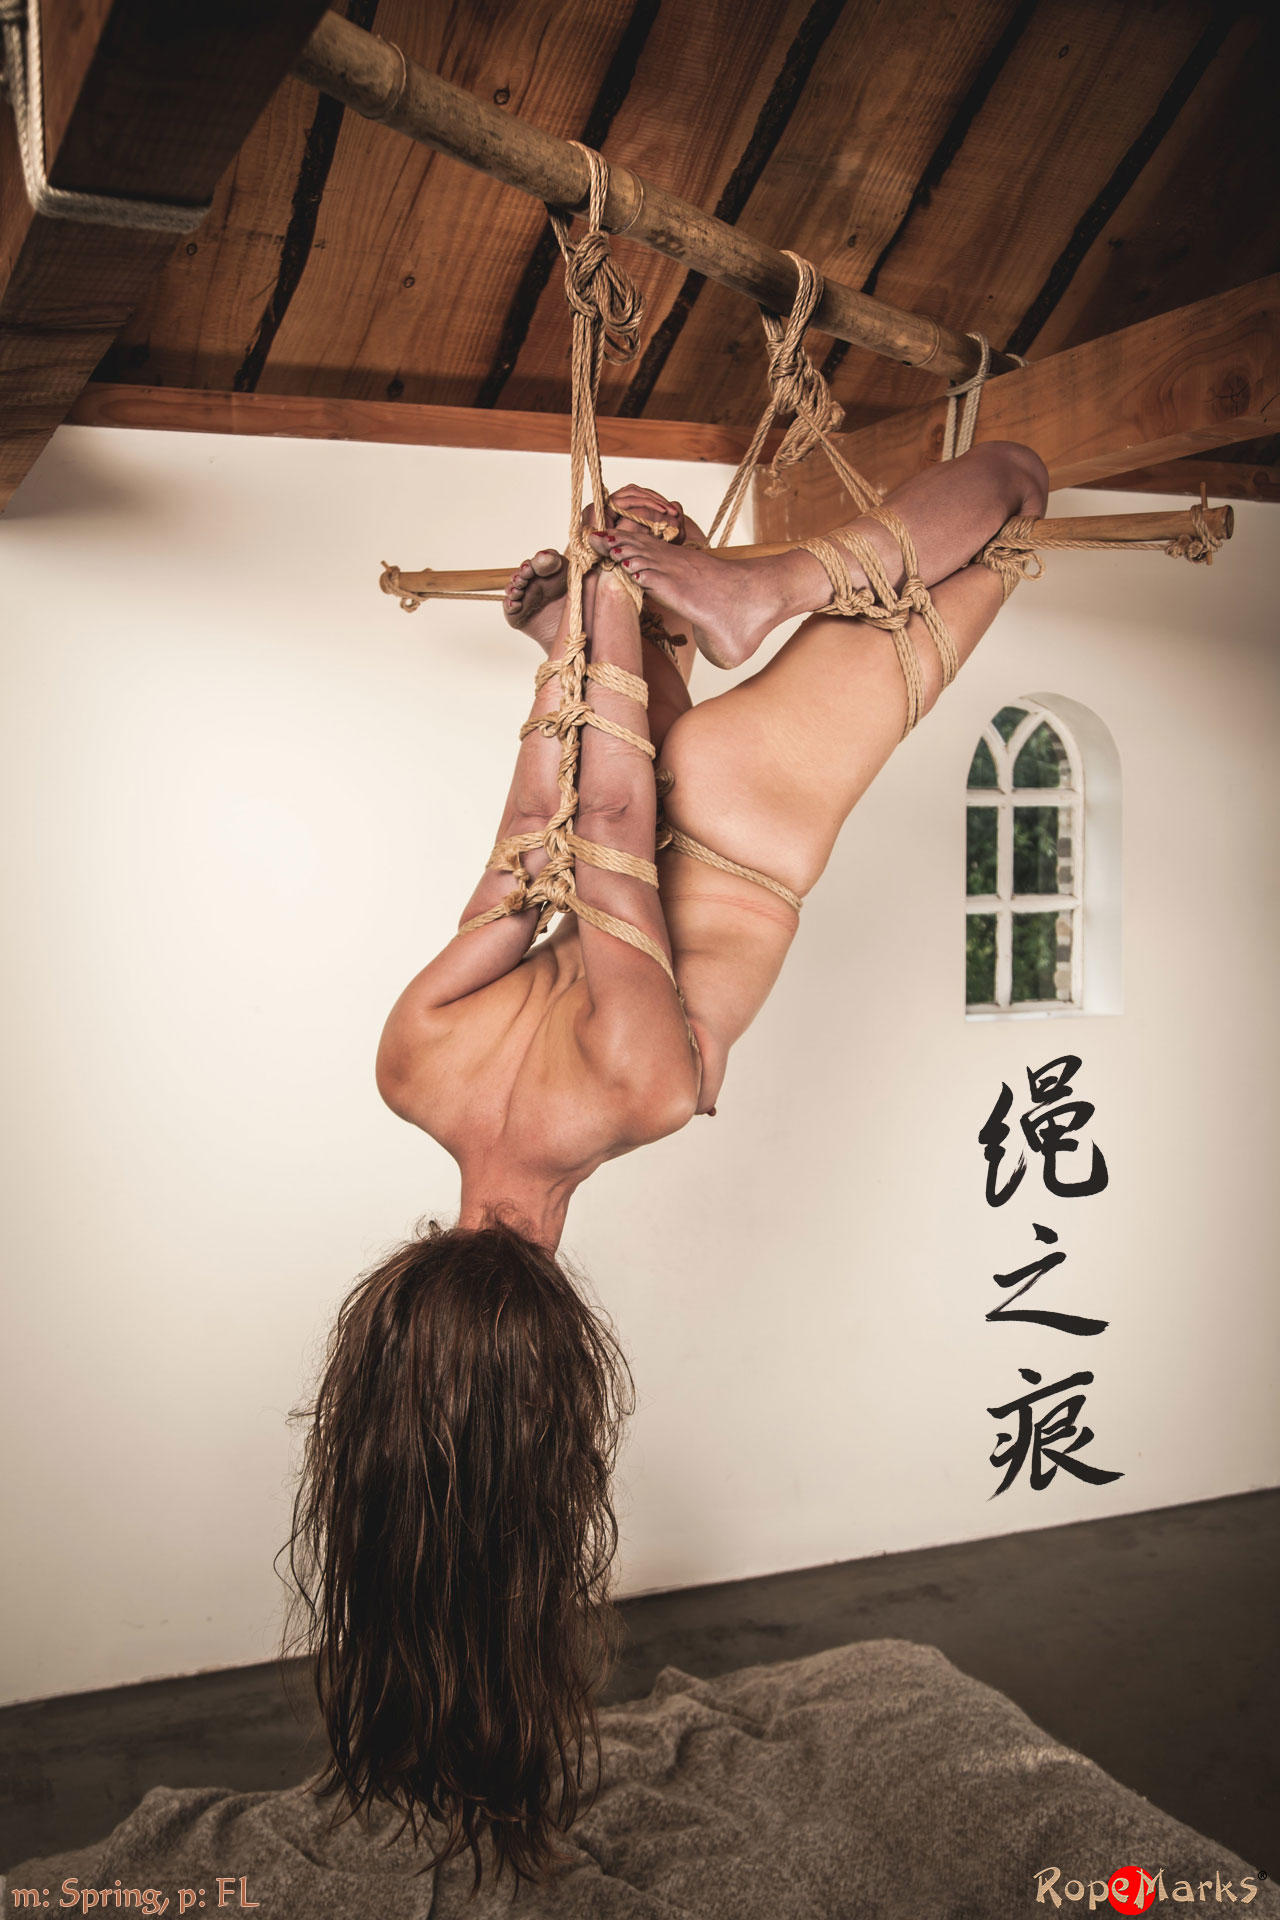 Rope bondage pictures using bamboo poles